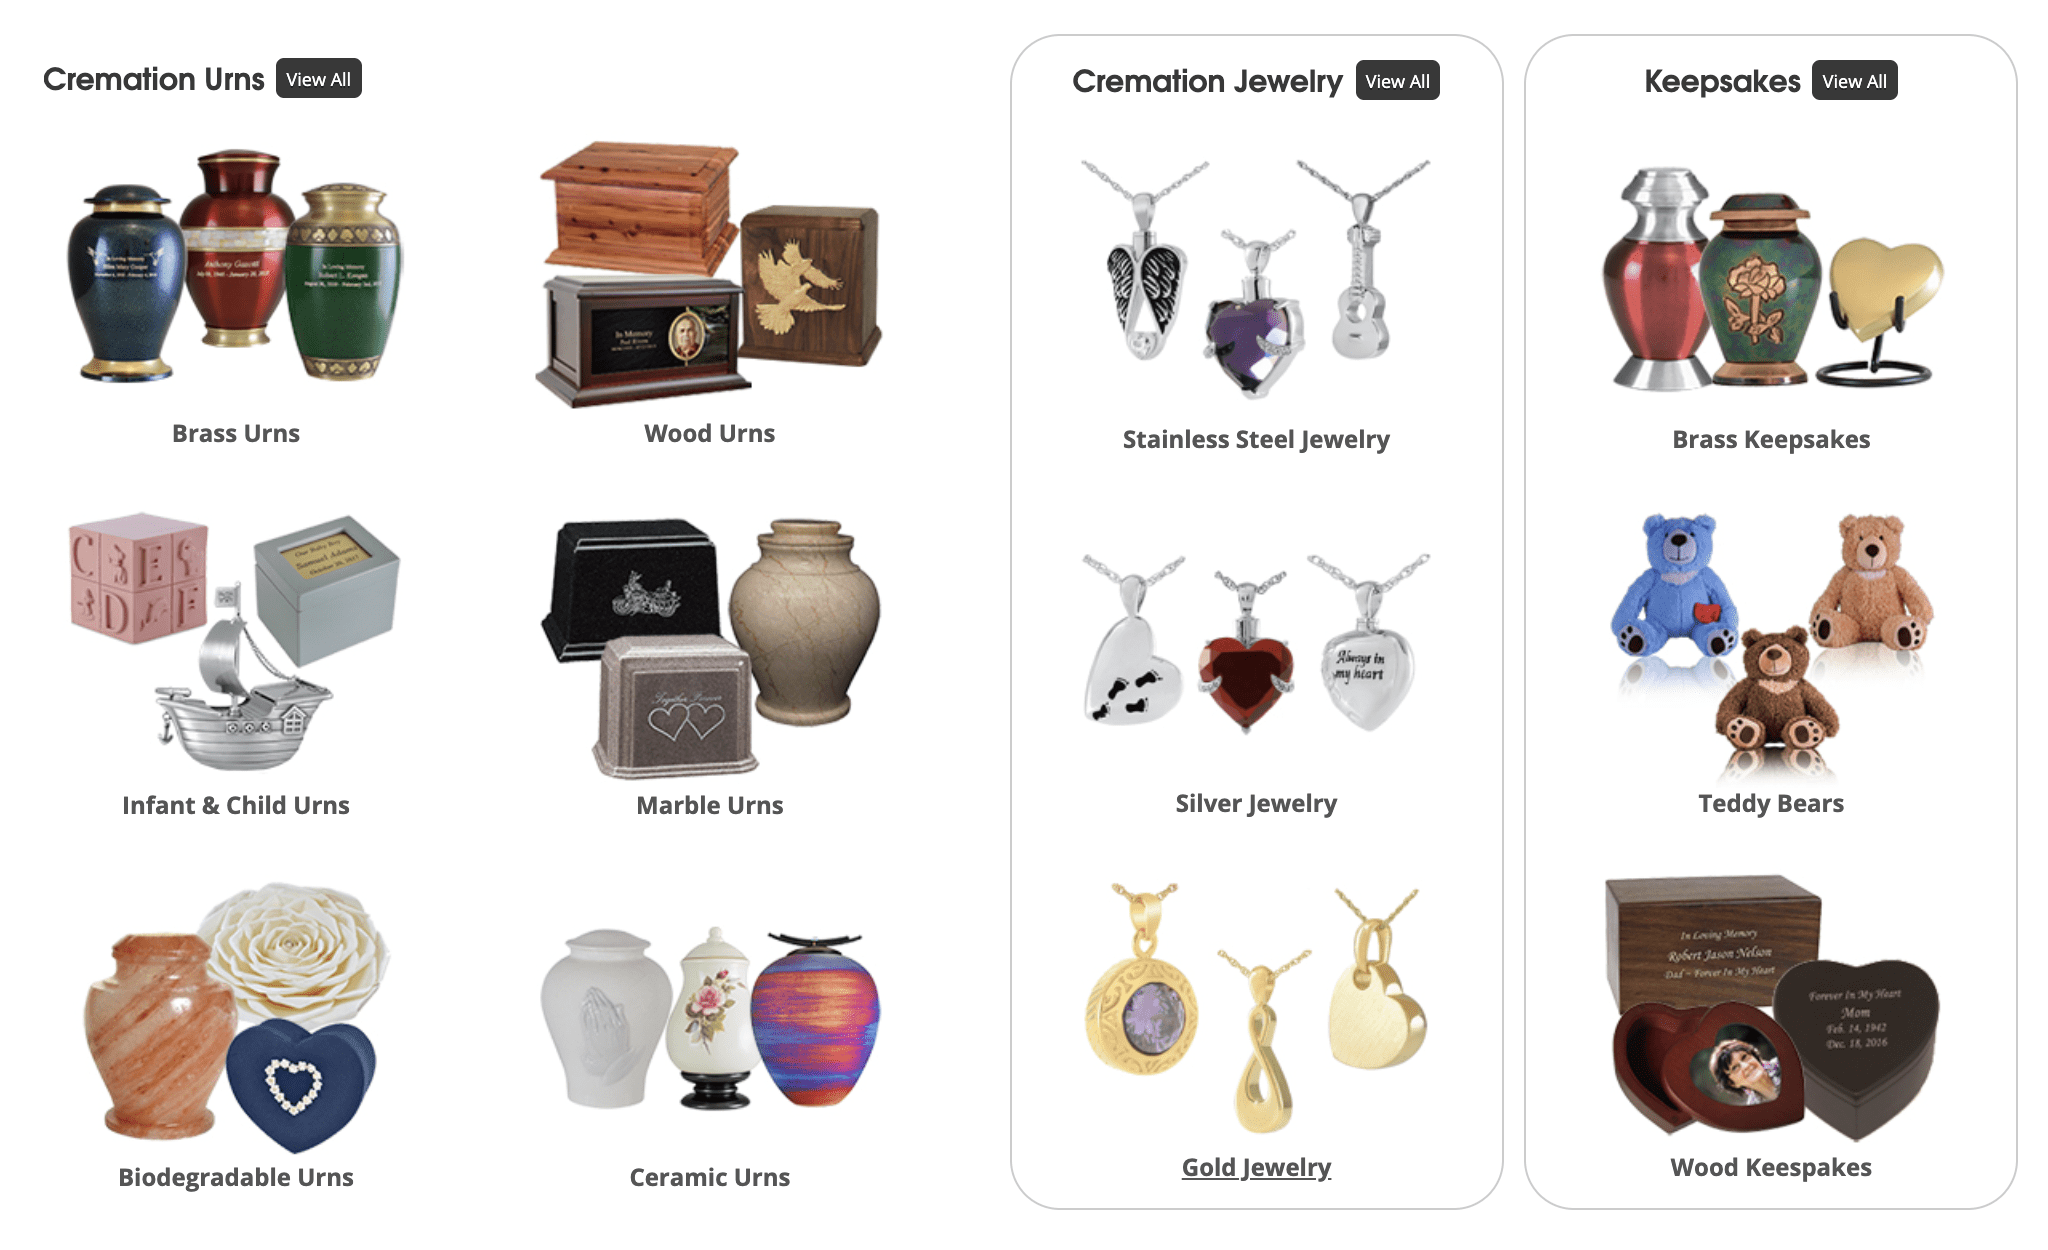 Cremation Urns, Jewelry, Keepsakes